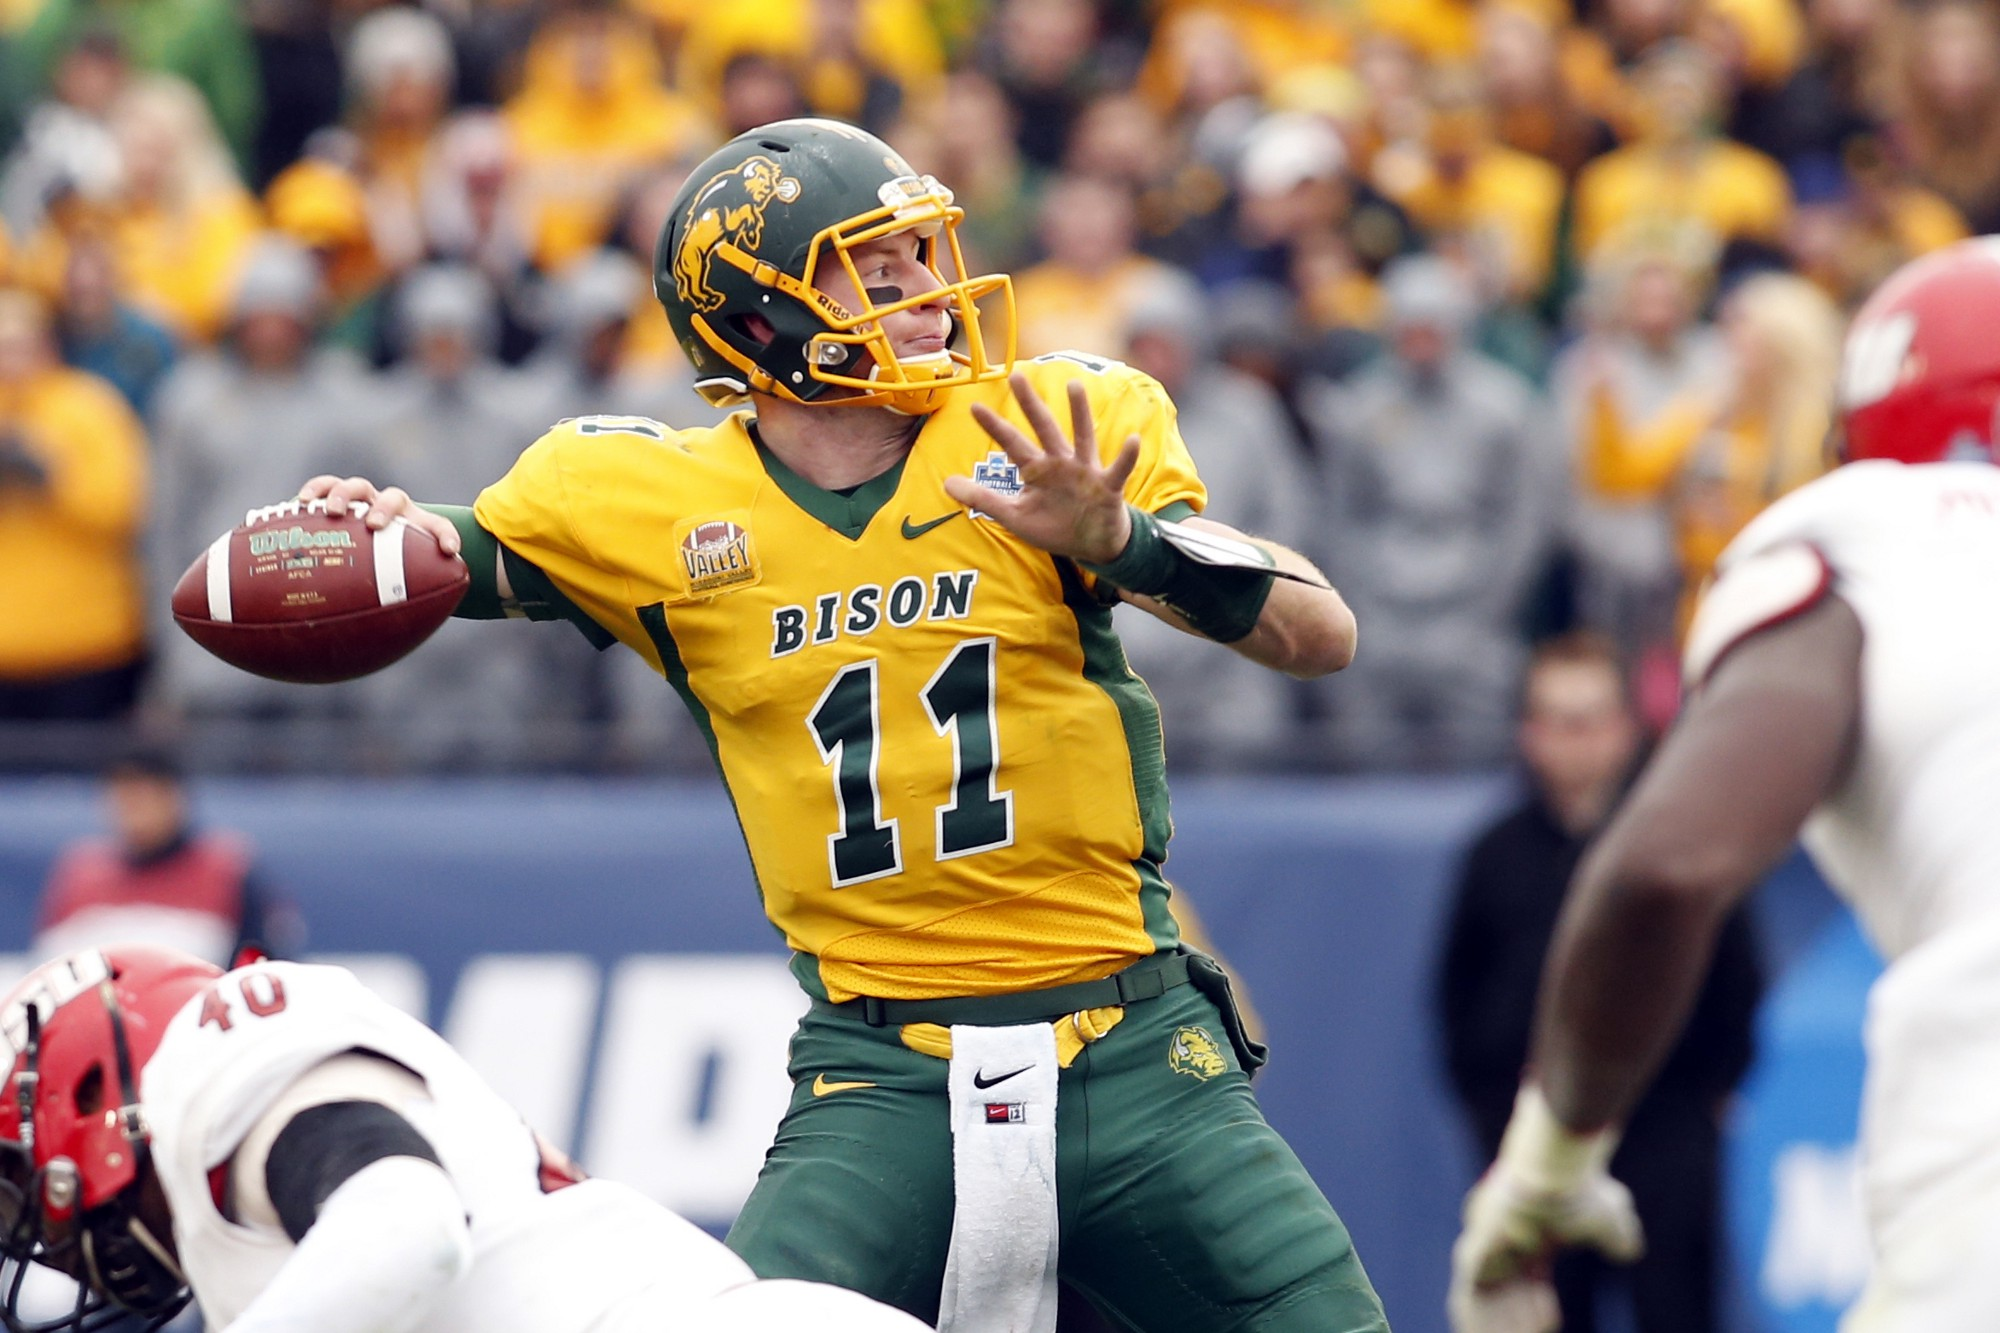 1_ARXBpwWHyCwSAVm3AiXbOg Carson Wentz -- doing whatever it takes to get there.